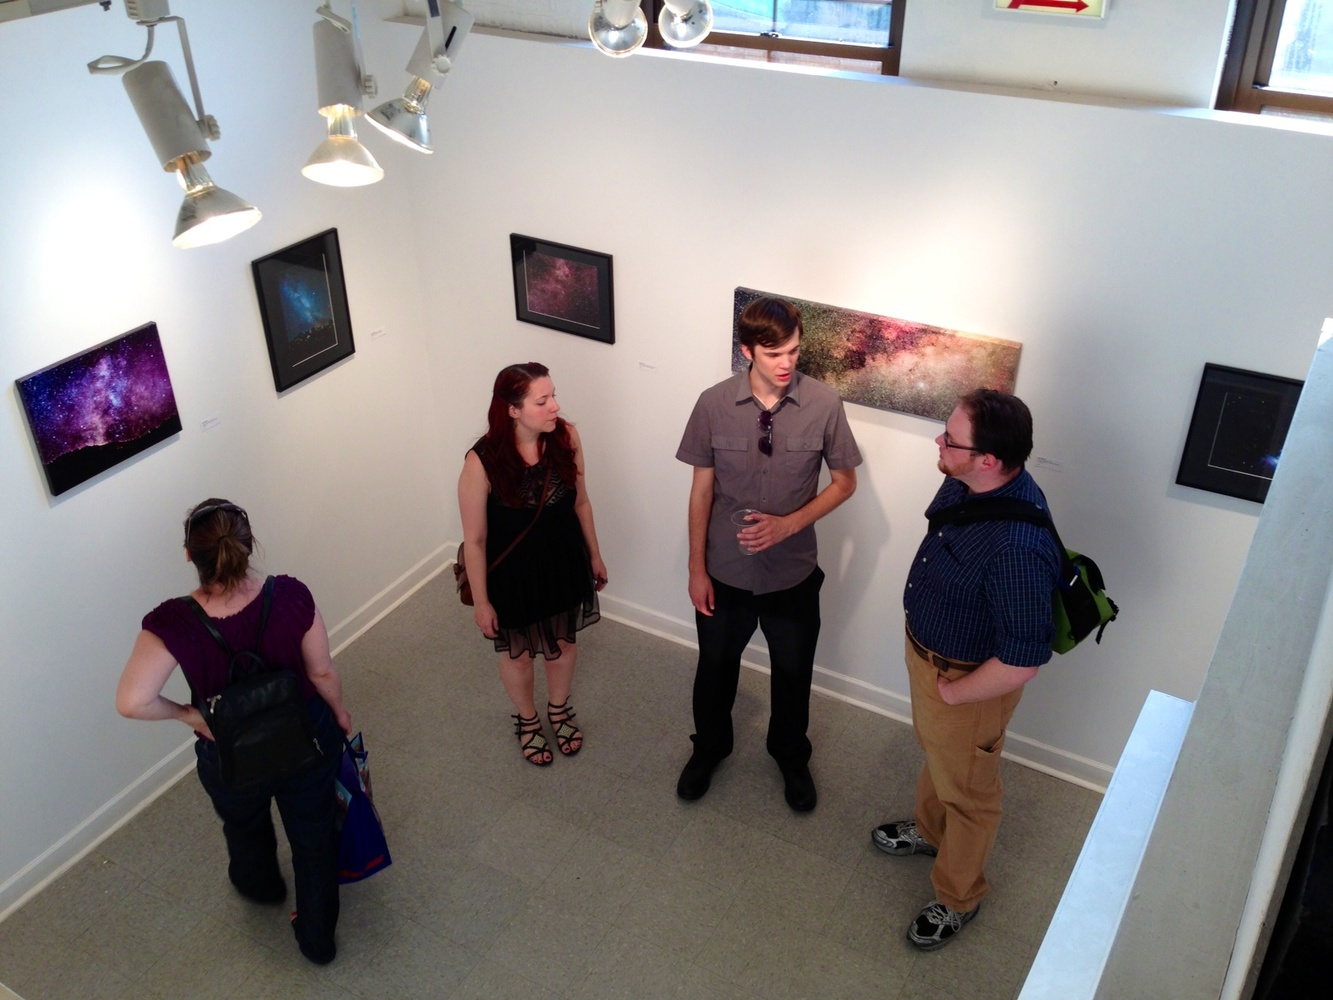 image of people standing around at an art gallery